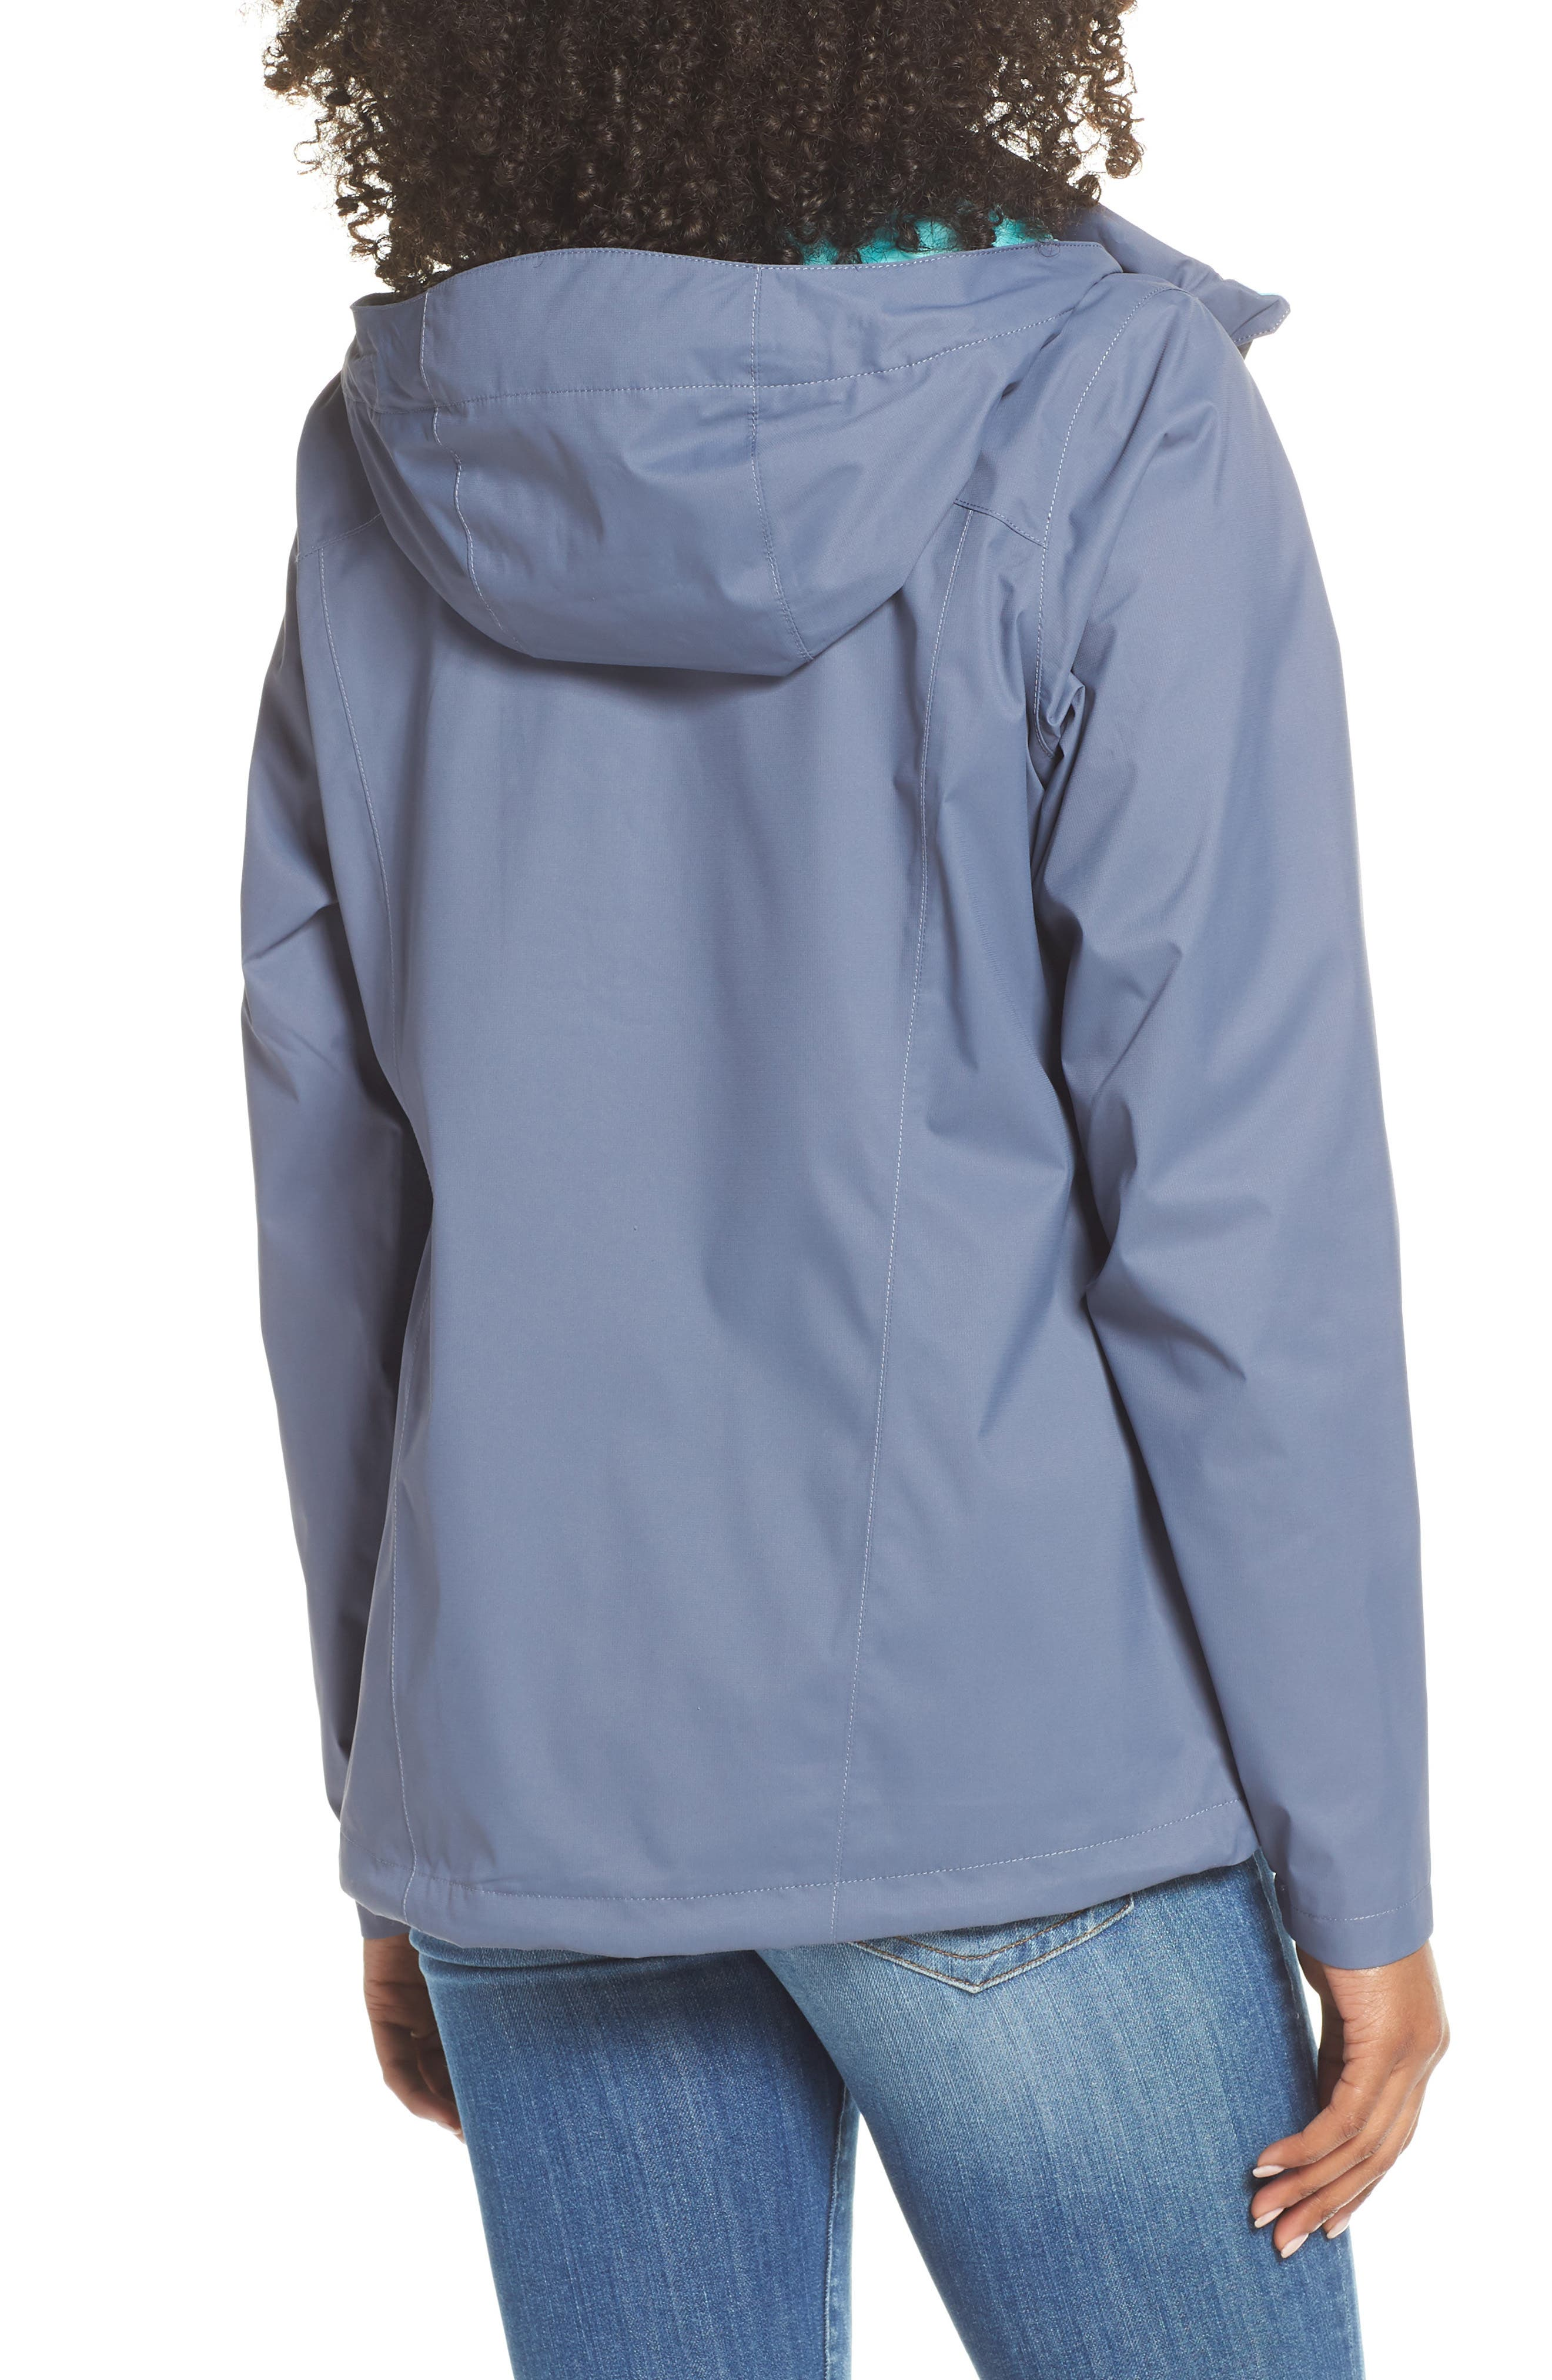 THE NORTH FACE, Resolve Plus Waterproof Jacket, Alternate thumbnail 2, color, GRISAILLE GREY/ GRISAILLE GREY